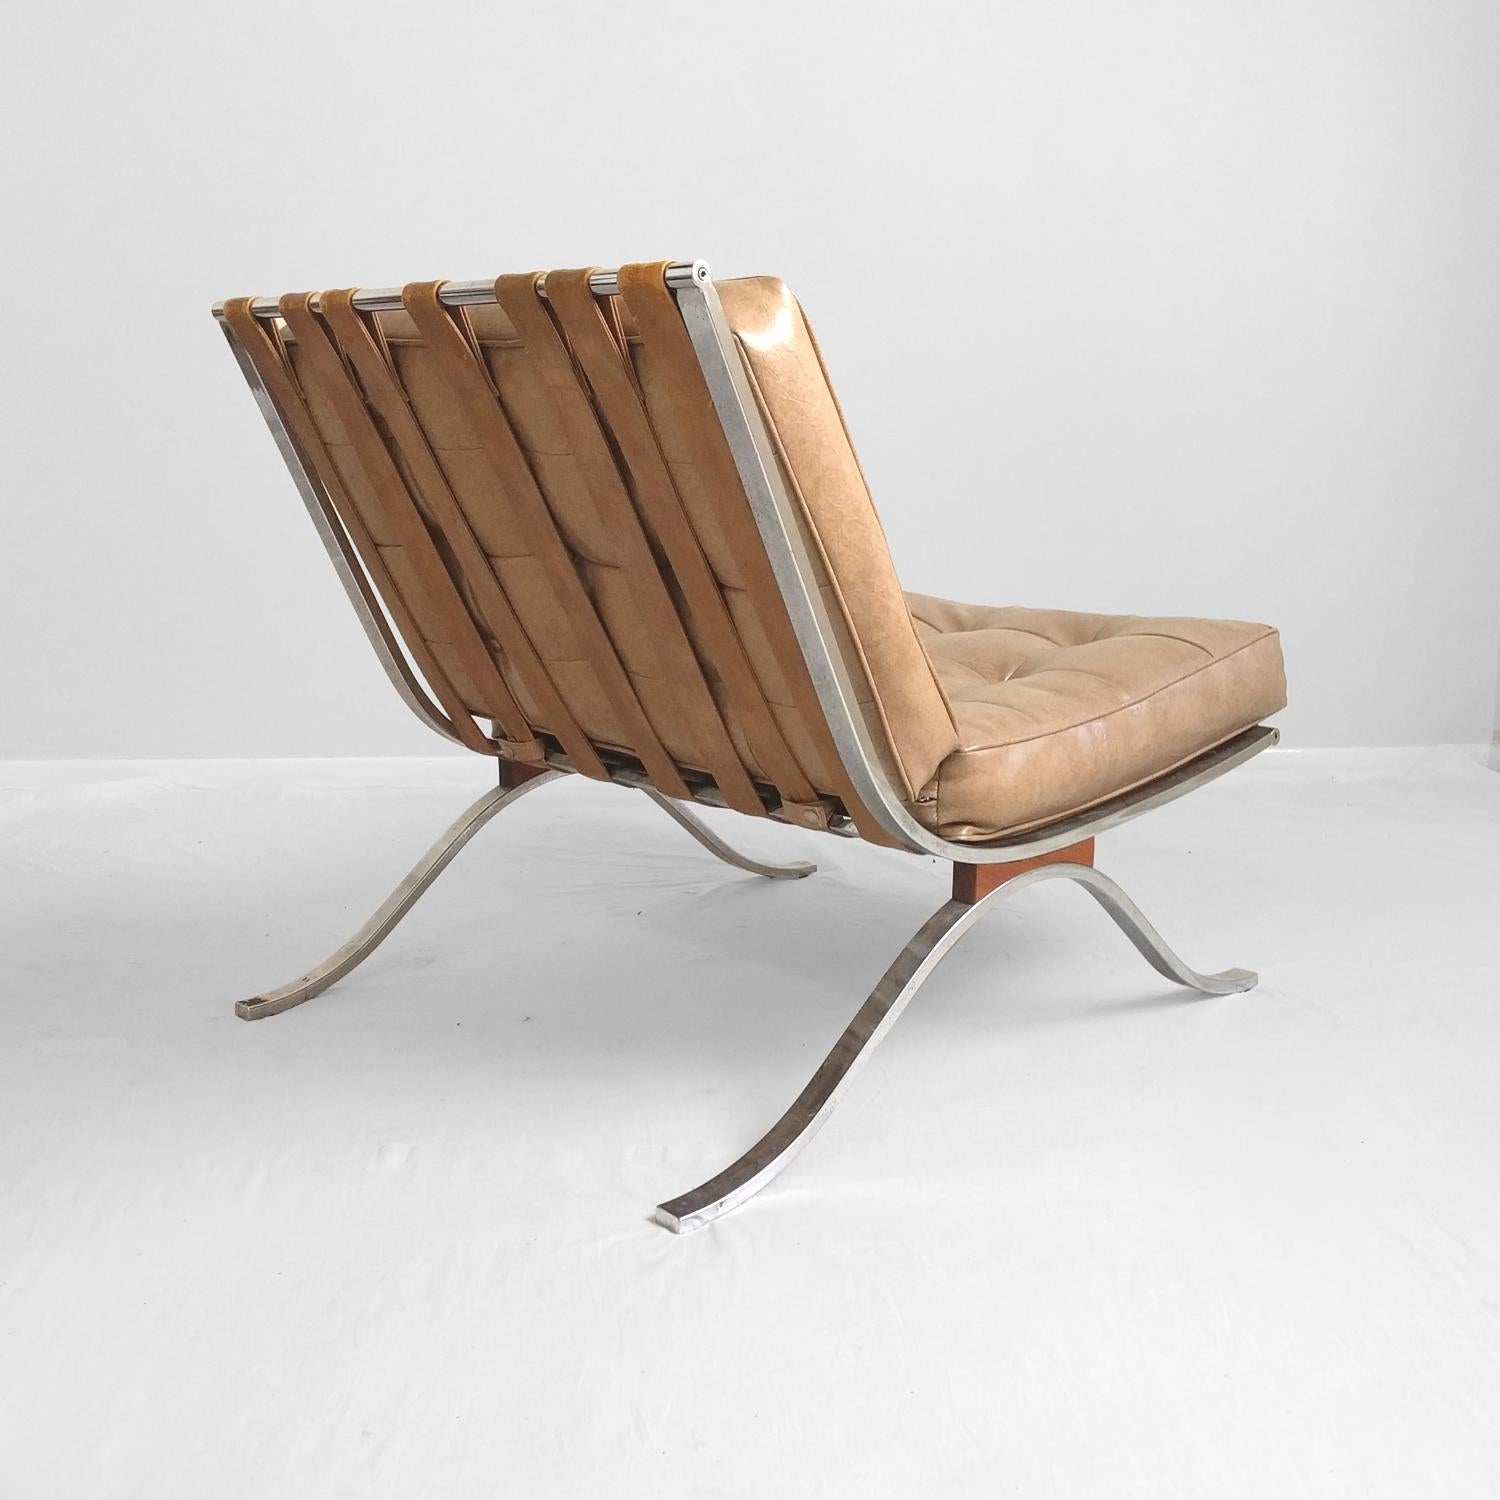 Genial Mid Century Modern Tan Faux Leather Barcelona Style Chair By Selig   Image  4 Of